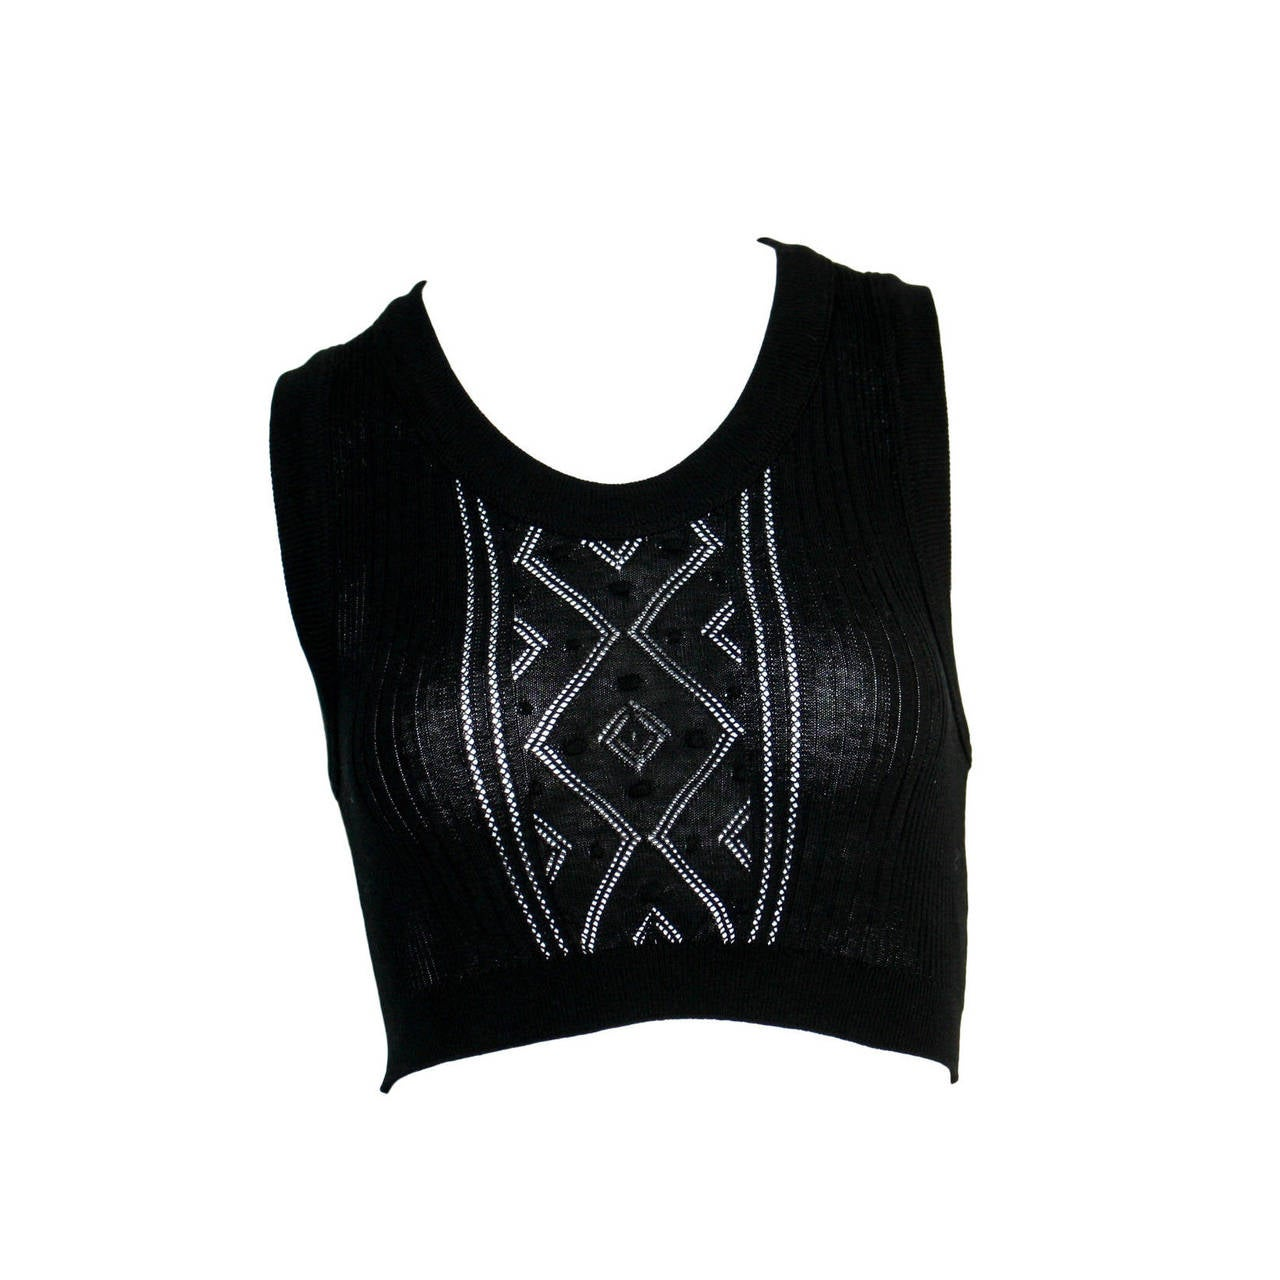 Sexy Vintage Jean Paul Gaultier Geometric Crochet Black Crop Top 1